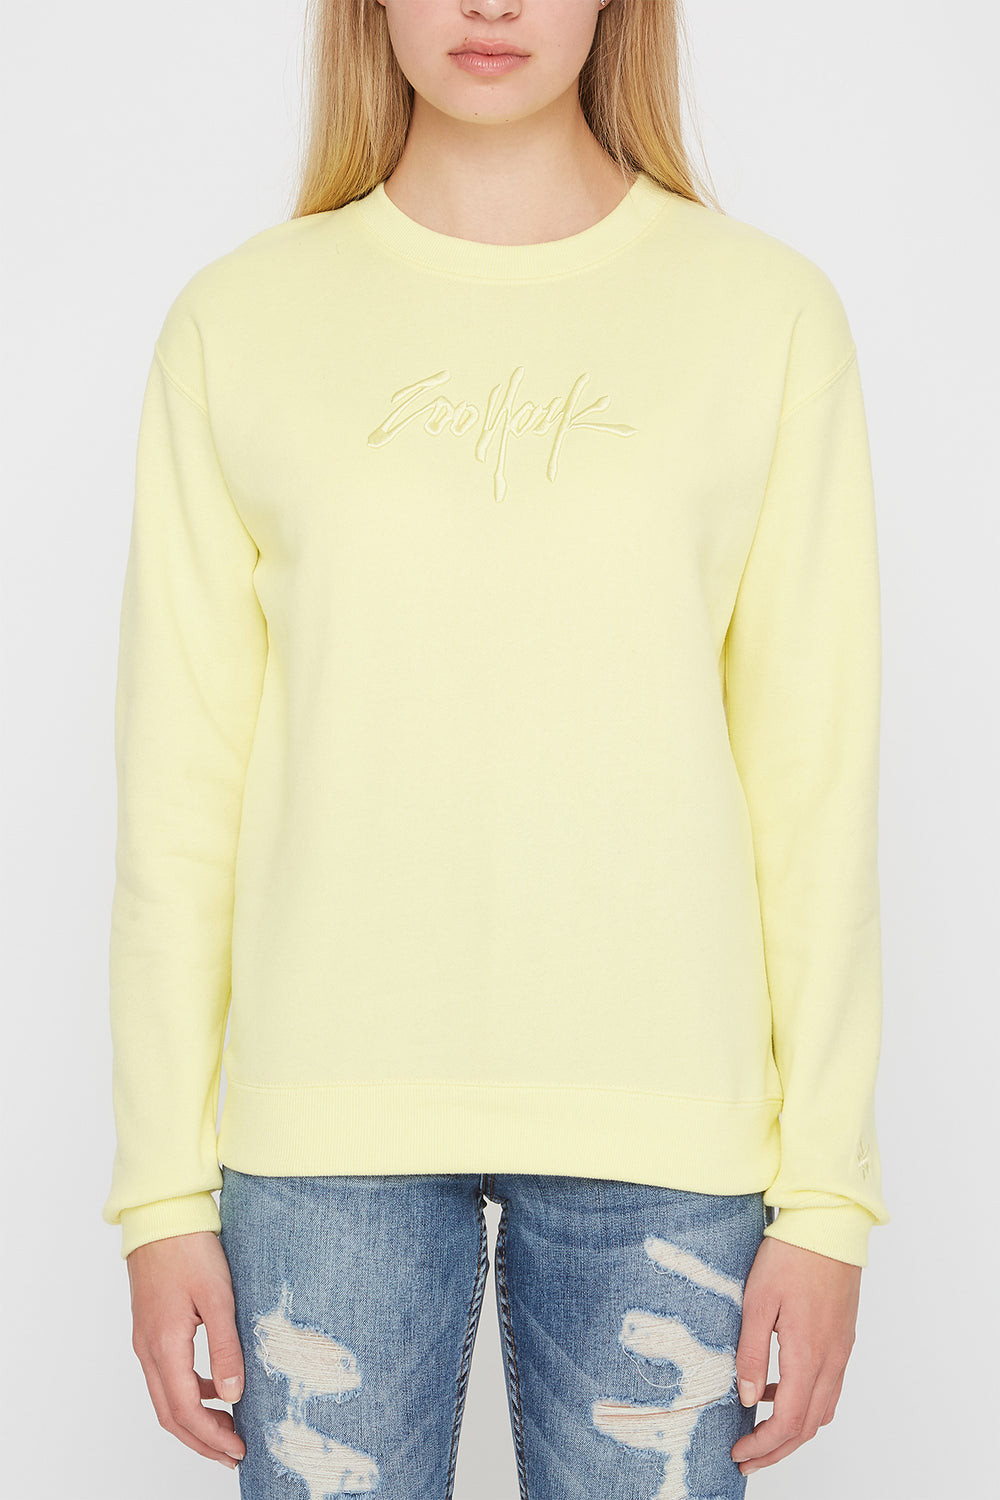 Zoo York Womens Embroidered Logo Pastel Sweater Pale Yellow